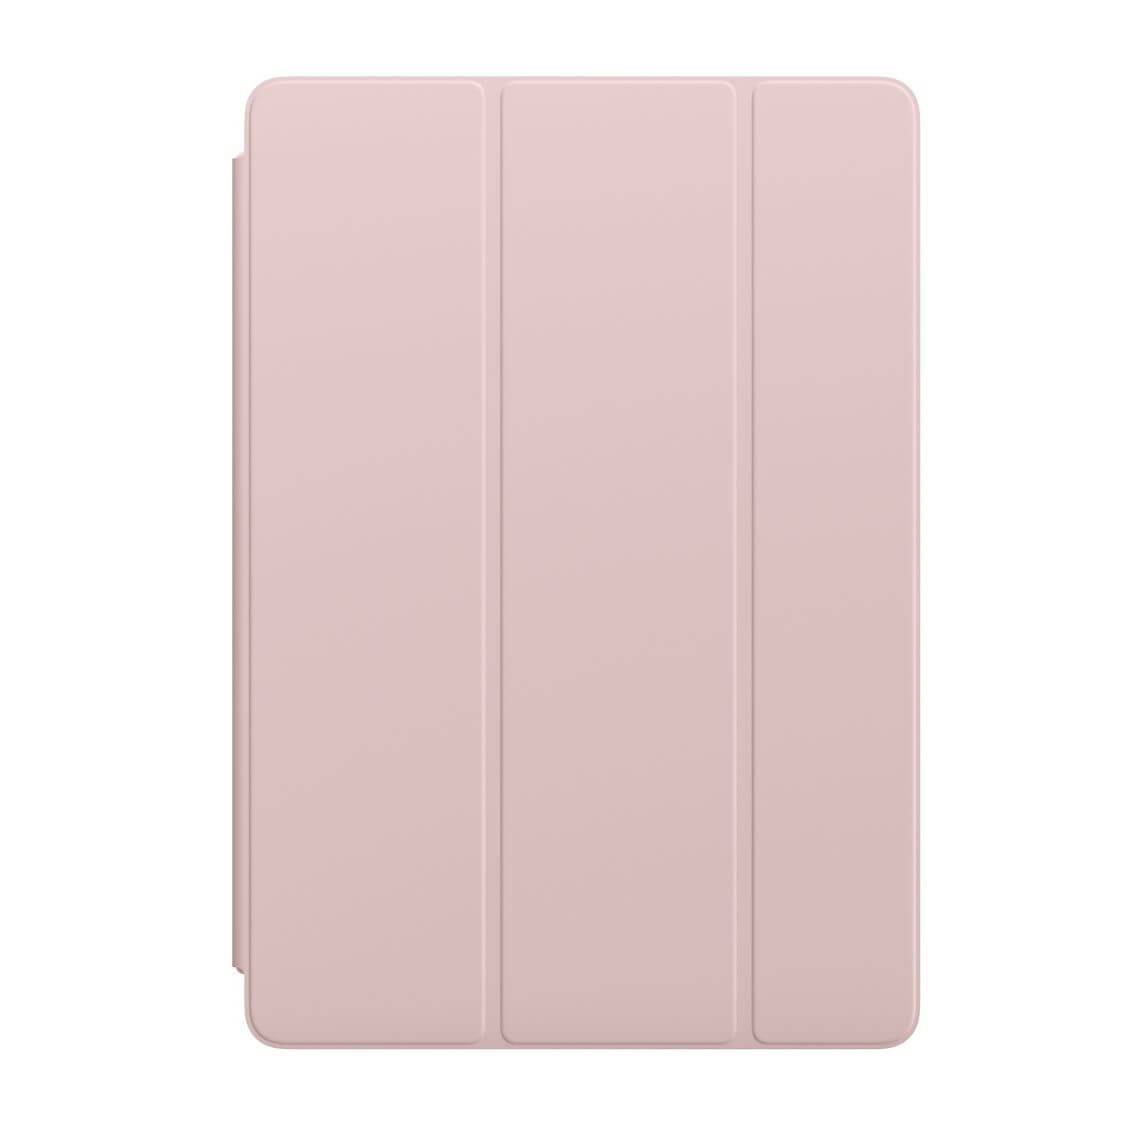 Smart Cover 10,5 tuuman iPad Prolle - hietaroosa